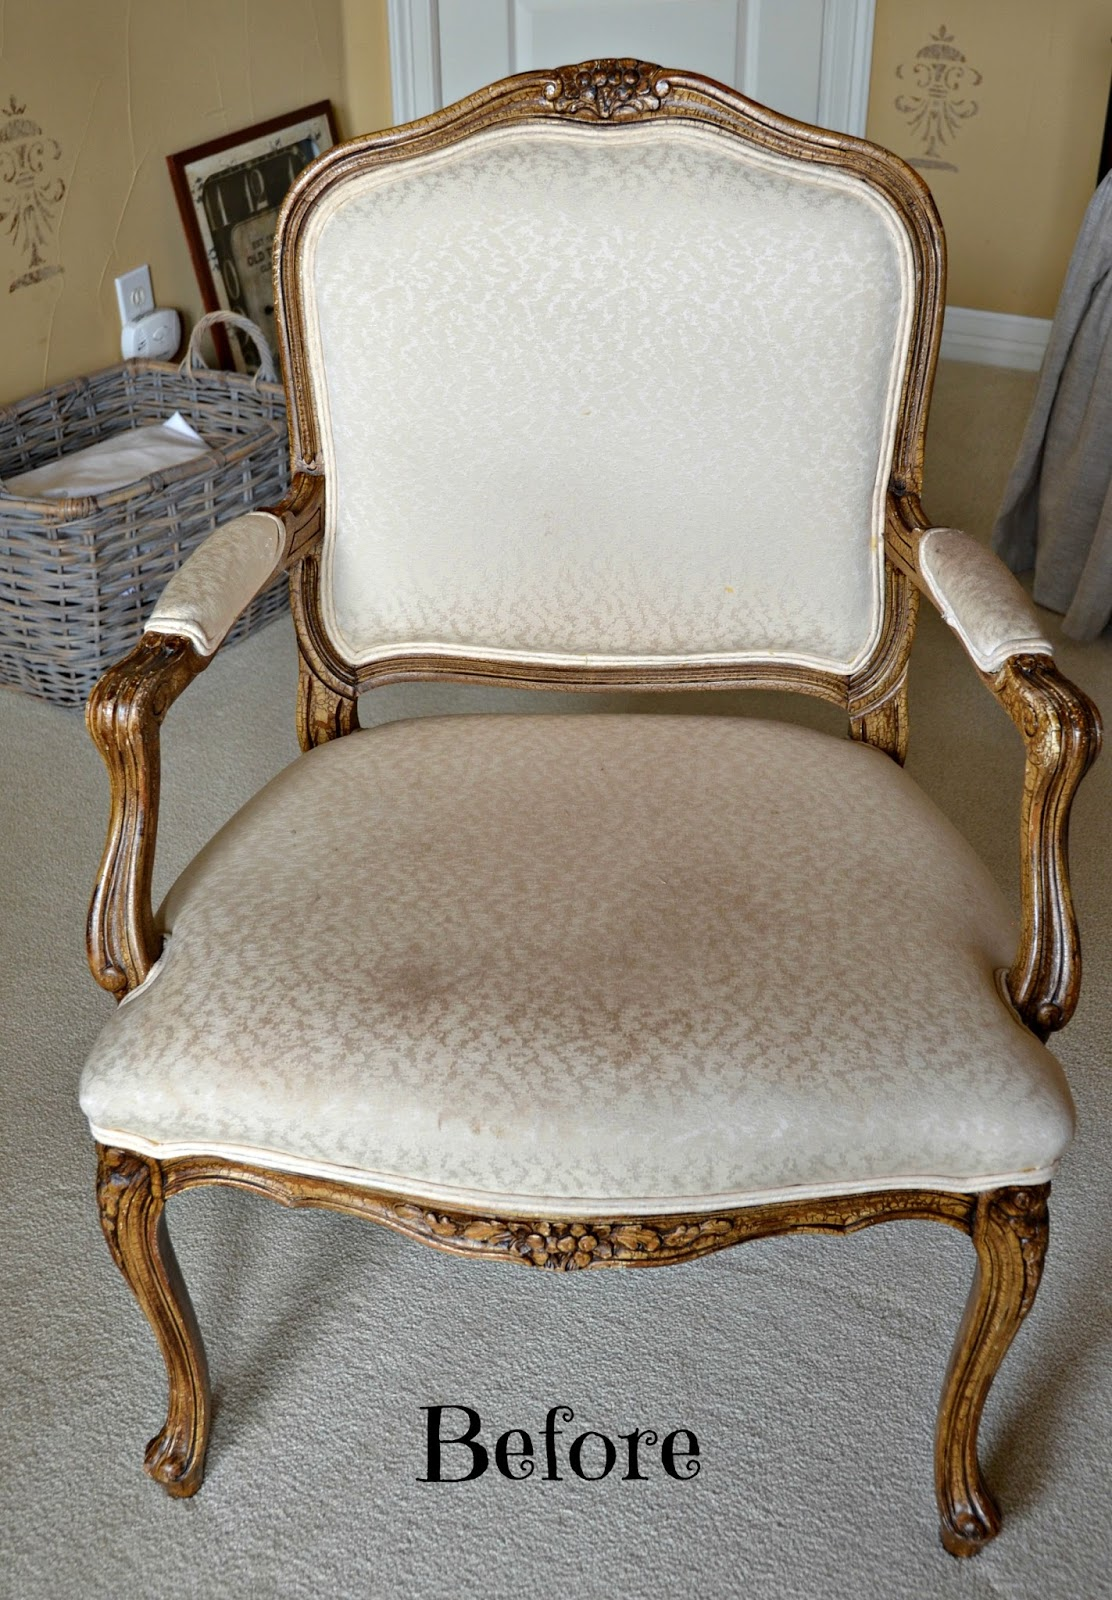 Upholstering a Chair  My Heart Lives Here